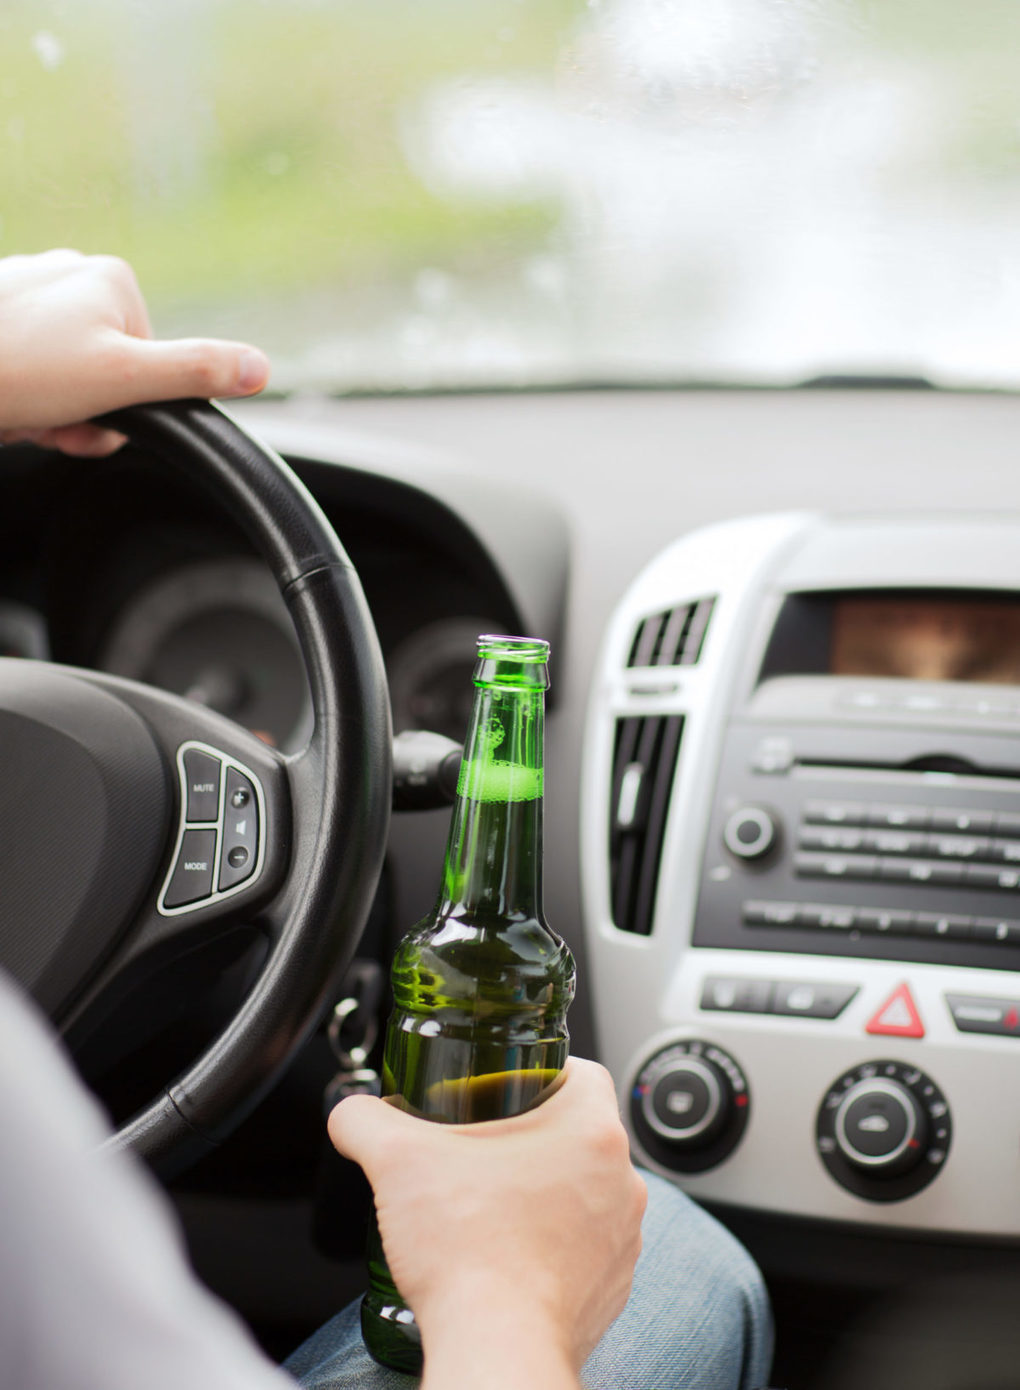 Portugal: Every Third Autopsied Driver Had Alcohol in Their Blood -